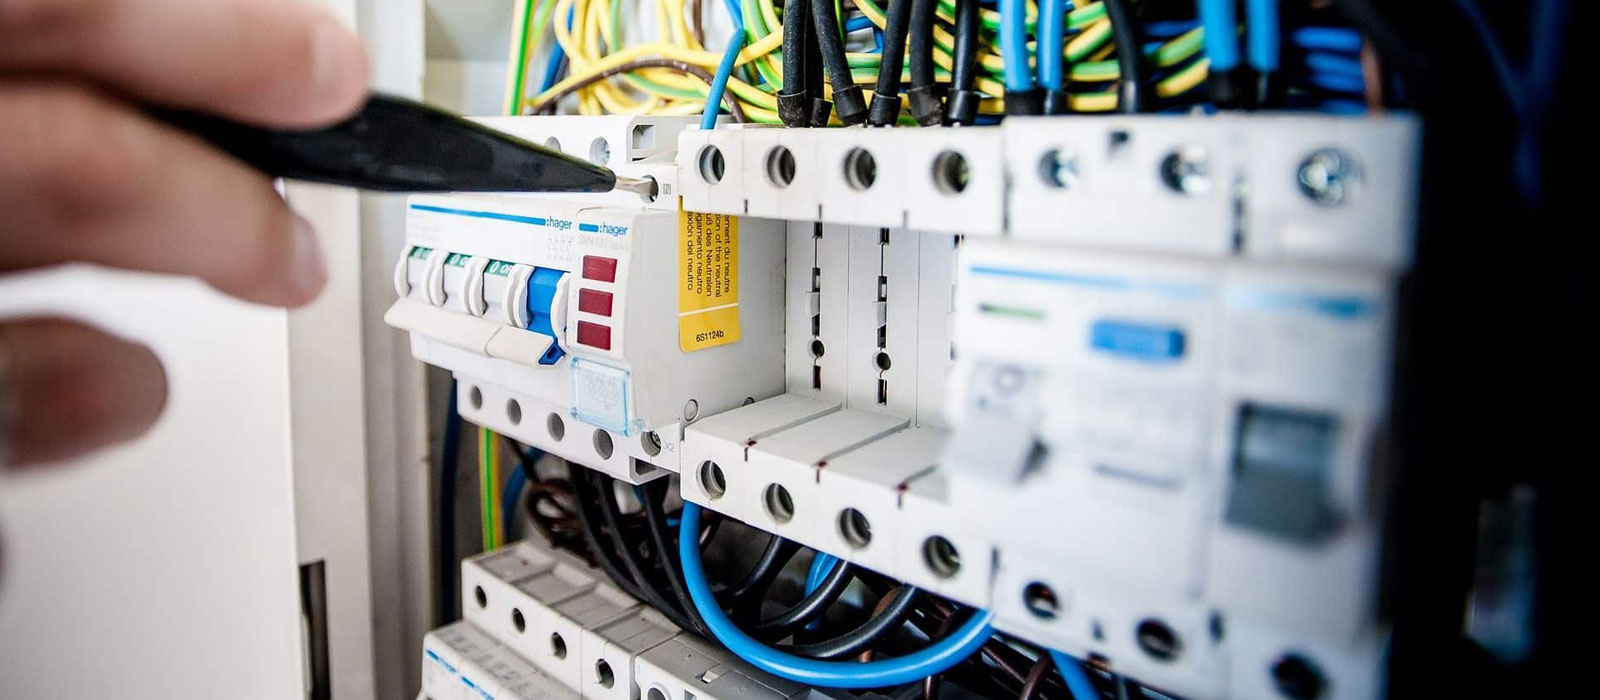 Our electricians specialise in providing electrical services to commercial, industrial and domestic customers across Perth including 24/7 emergencies.